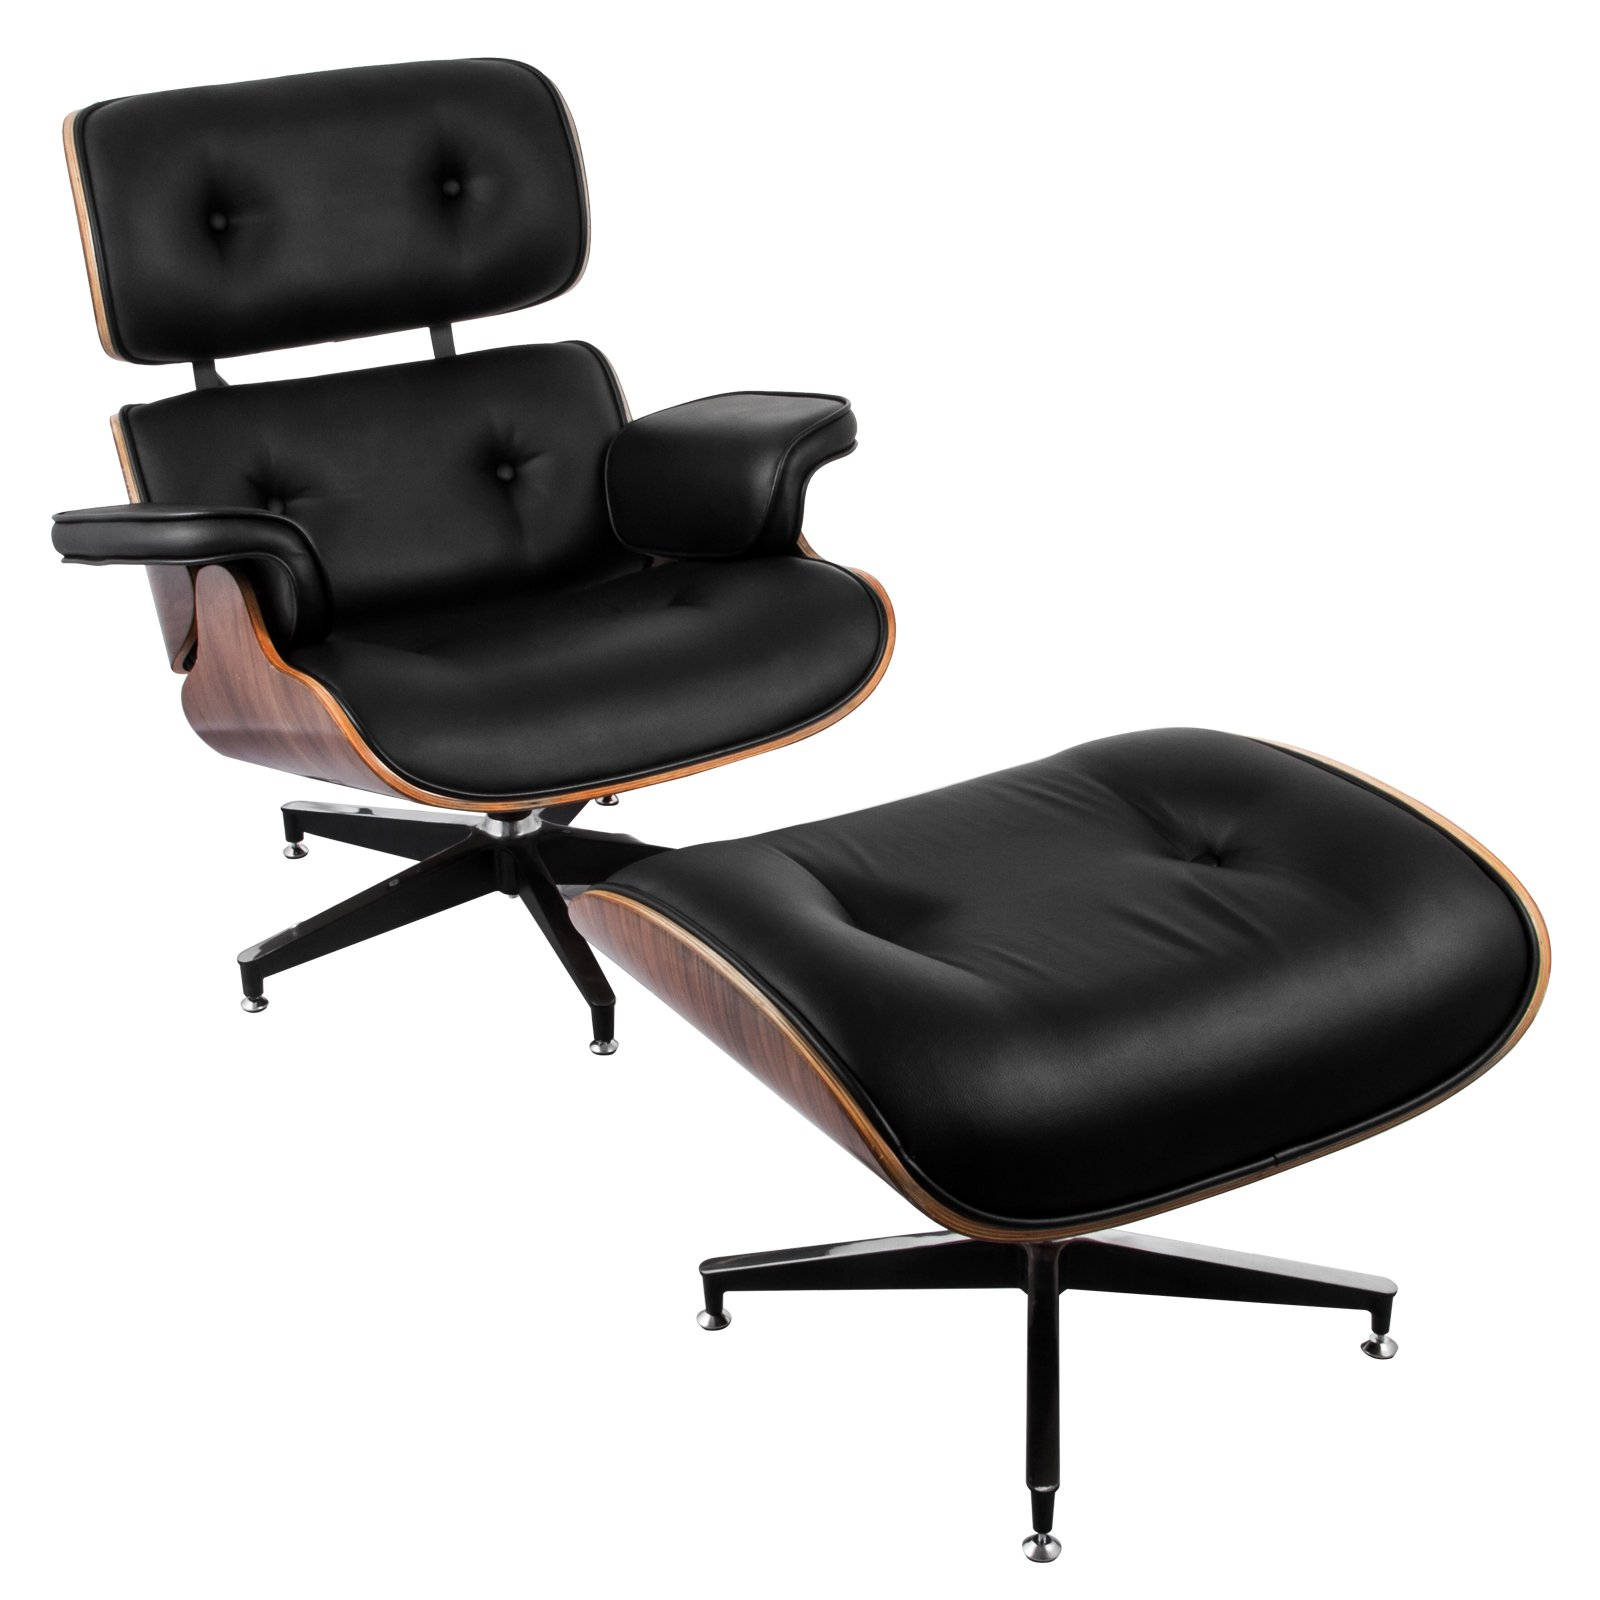 Tremendous Buy Vevor Lounge Chair And Ottoman Mid Century Modern Andrewgaddart Wooden Chair Designs For Living Room Andrewgaddartcom